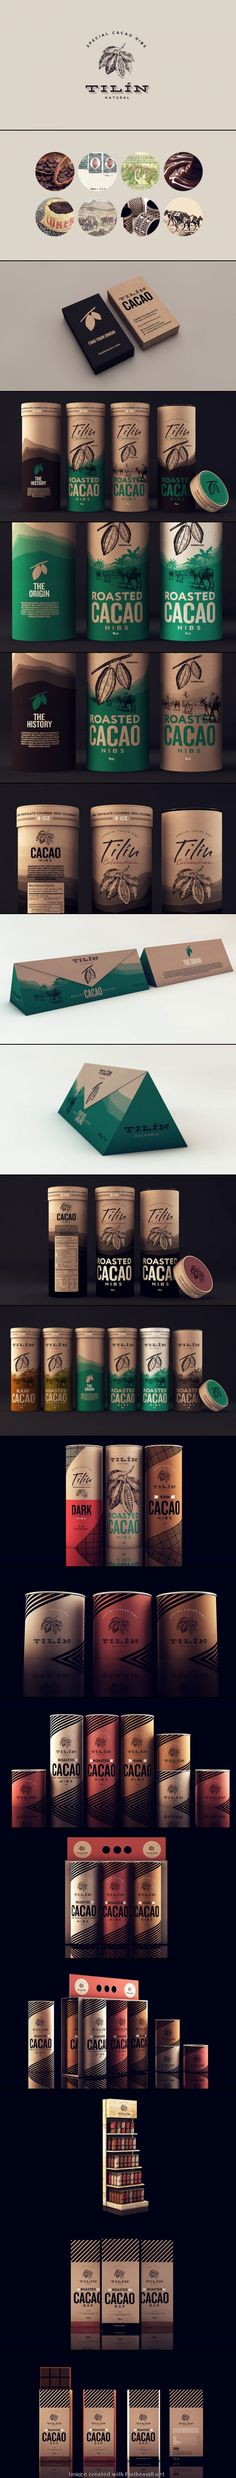 Sweety Branding Studio created packaging and branding for Tilín – a chocolate brand from Colombia.